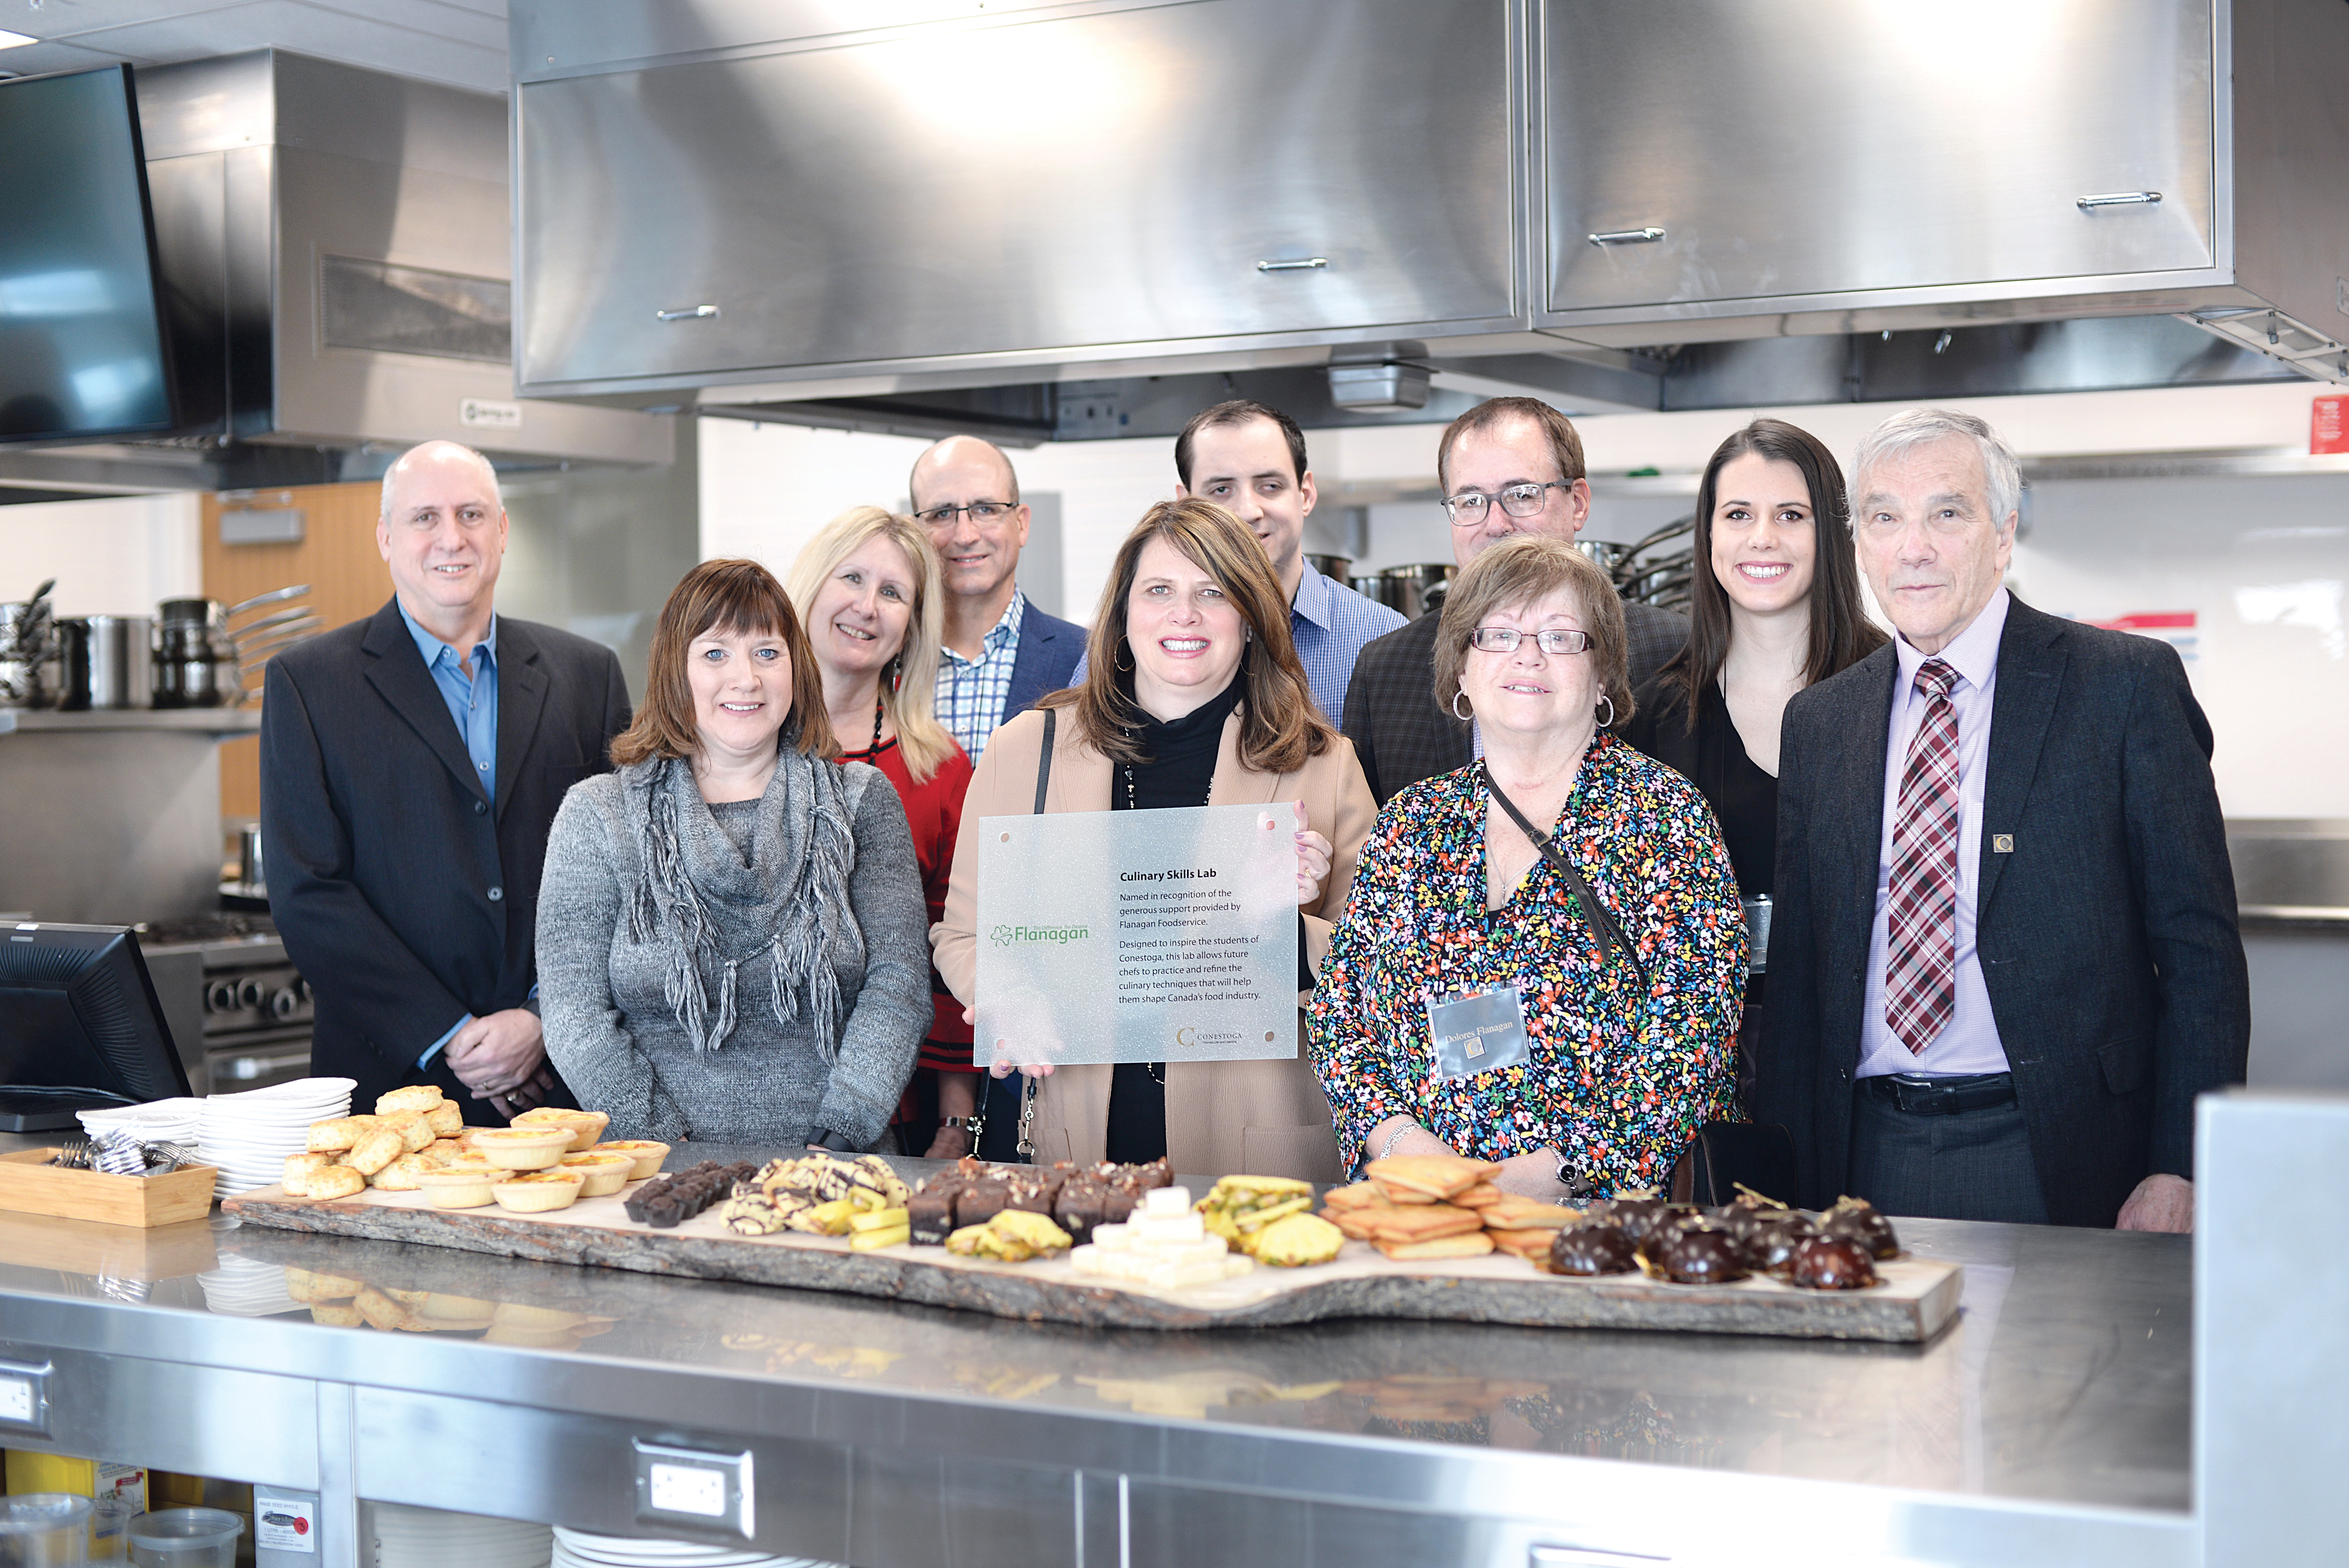 Conestoga College - Flanagan Foodservice February 2019.jpg